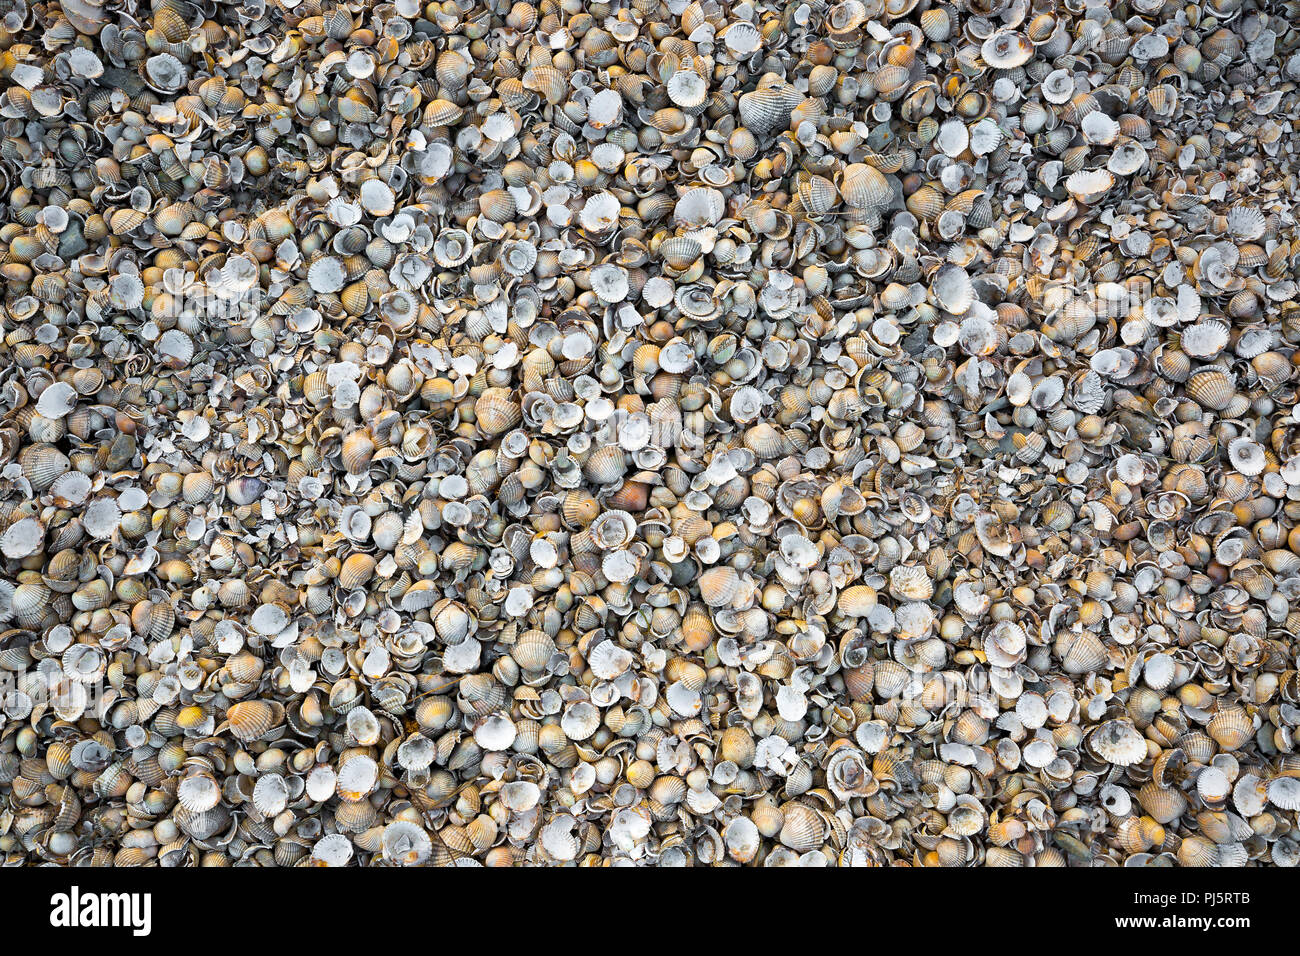 Close-up shot looking down on hundreds of empty small seashells densely packed together on UK beach. Useful background for advertising/design ideas. - Stock Image